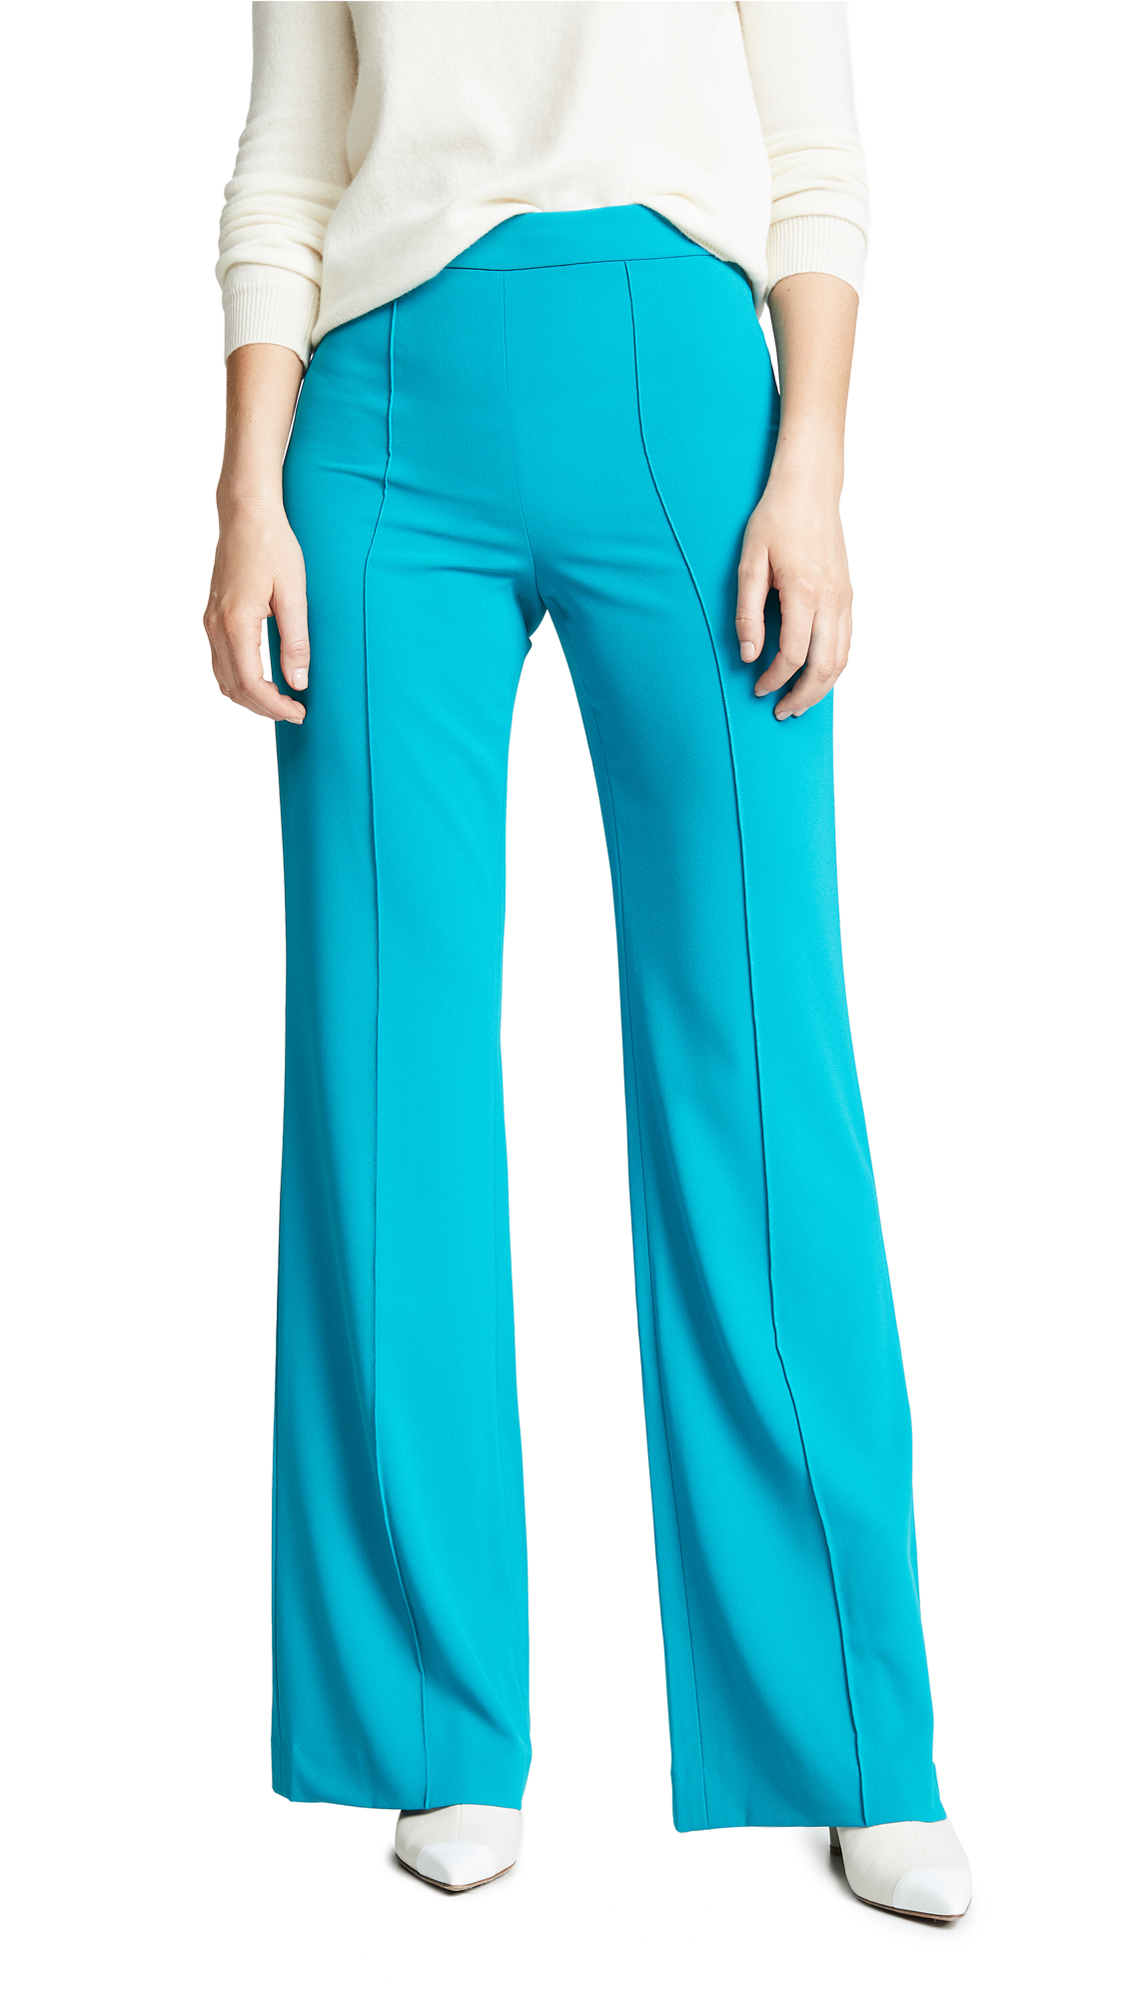 alice + olivia Jalisa Fitted Pants - Teal